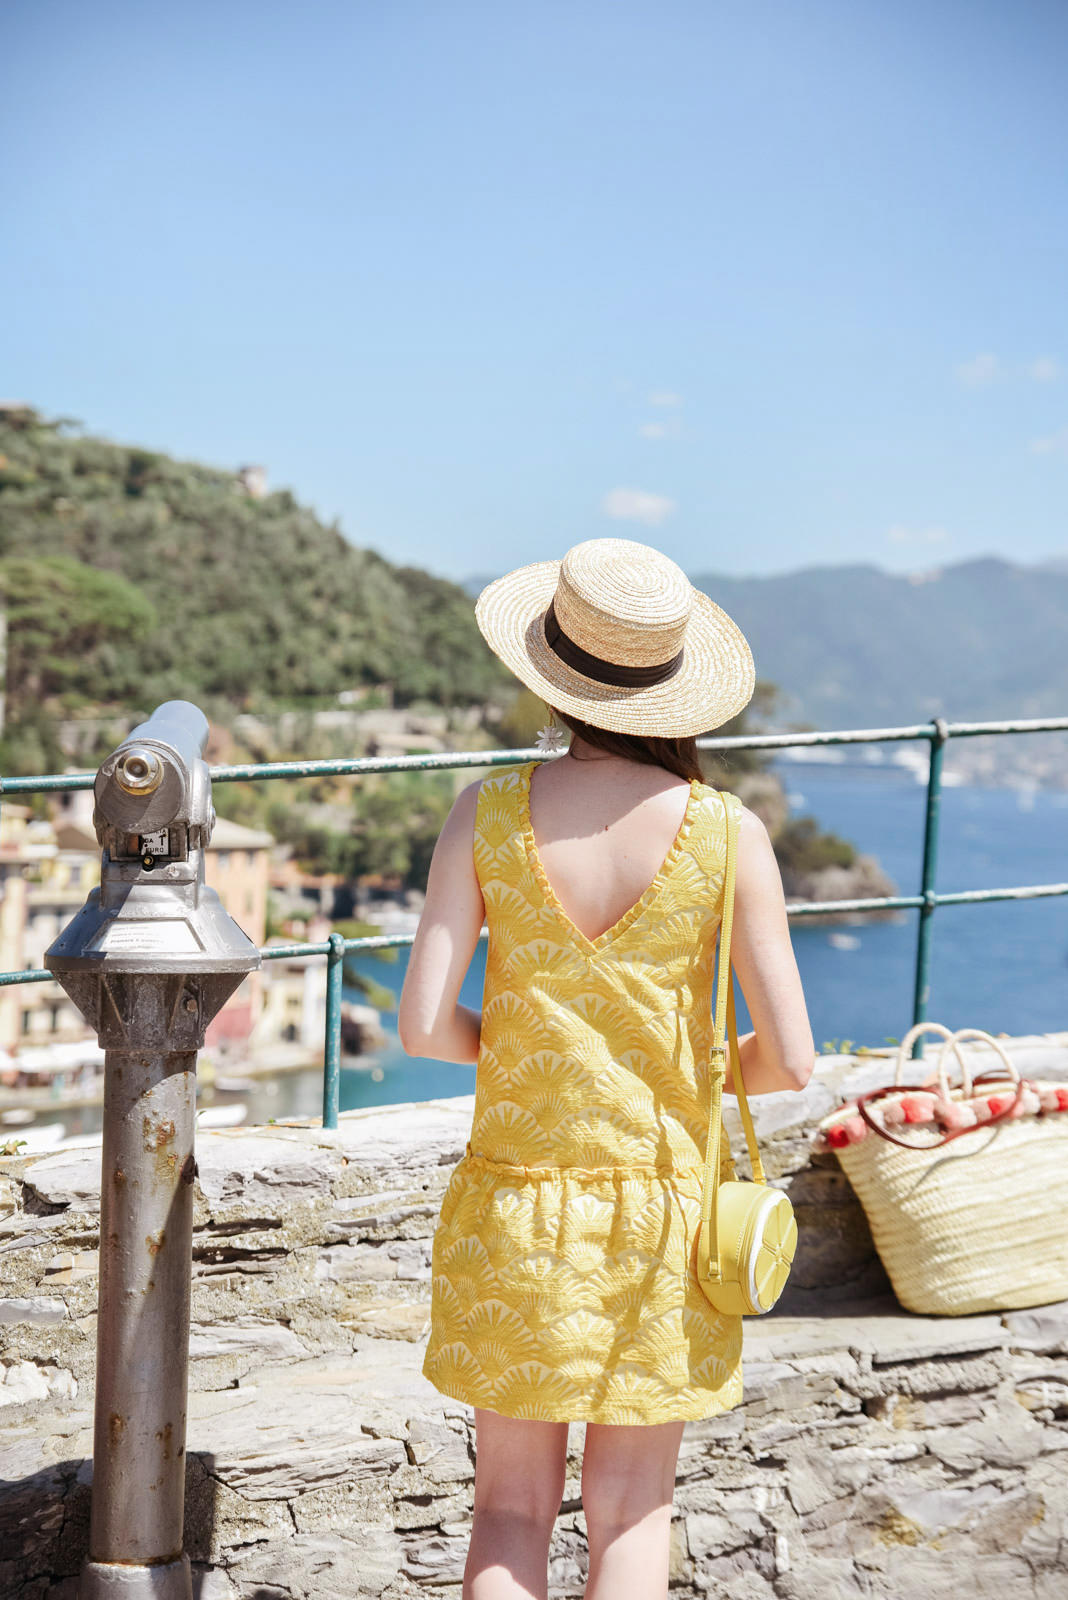 Blog-Mode-And-The-City-Lifestyle-Italie-Portofino-Belmond-Hotel-13 copie copie